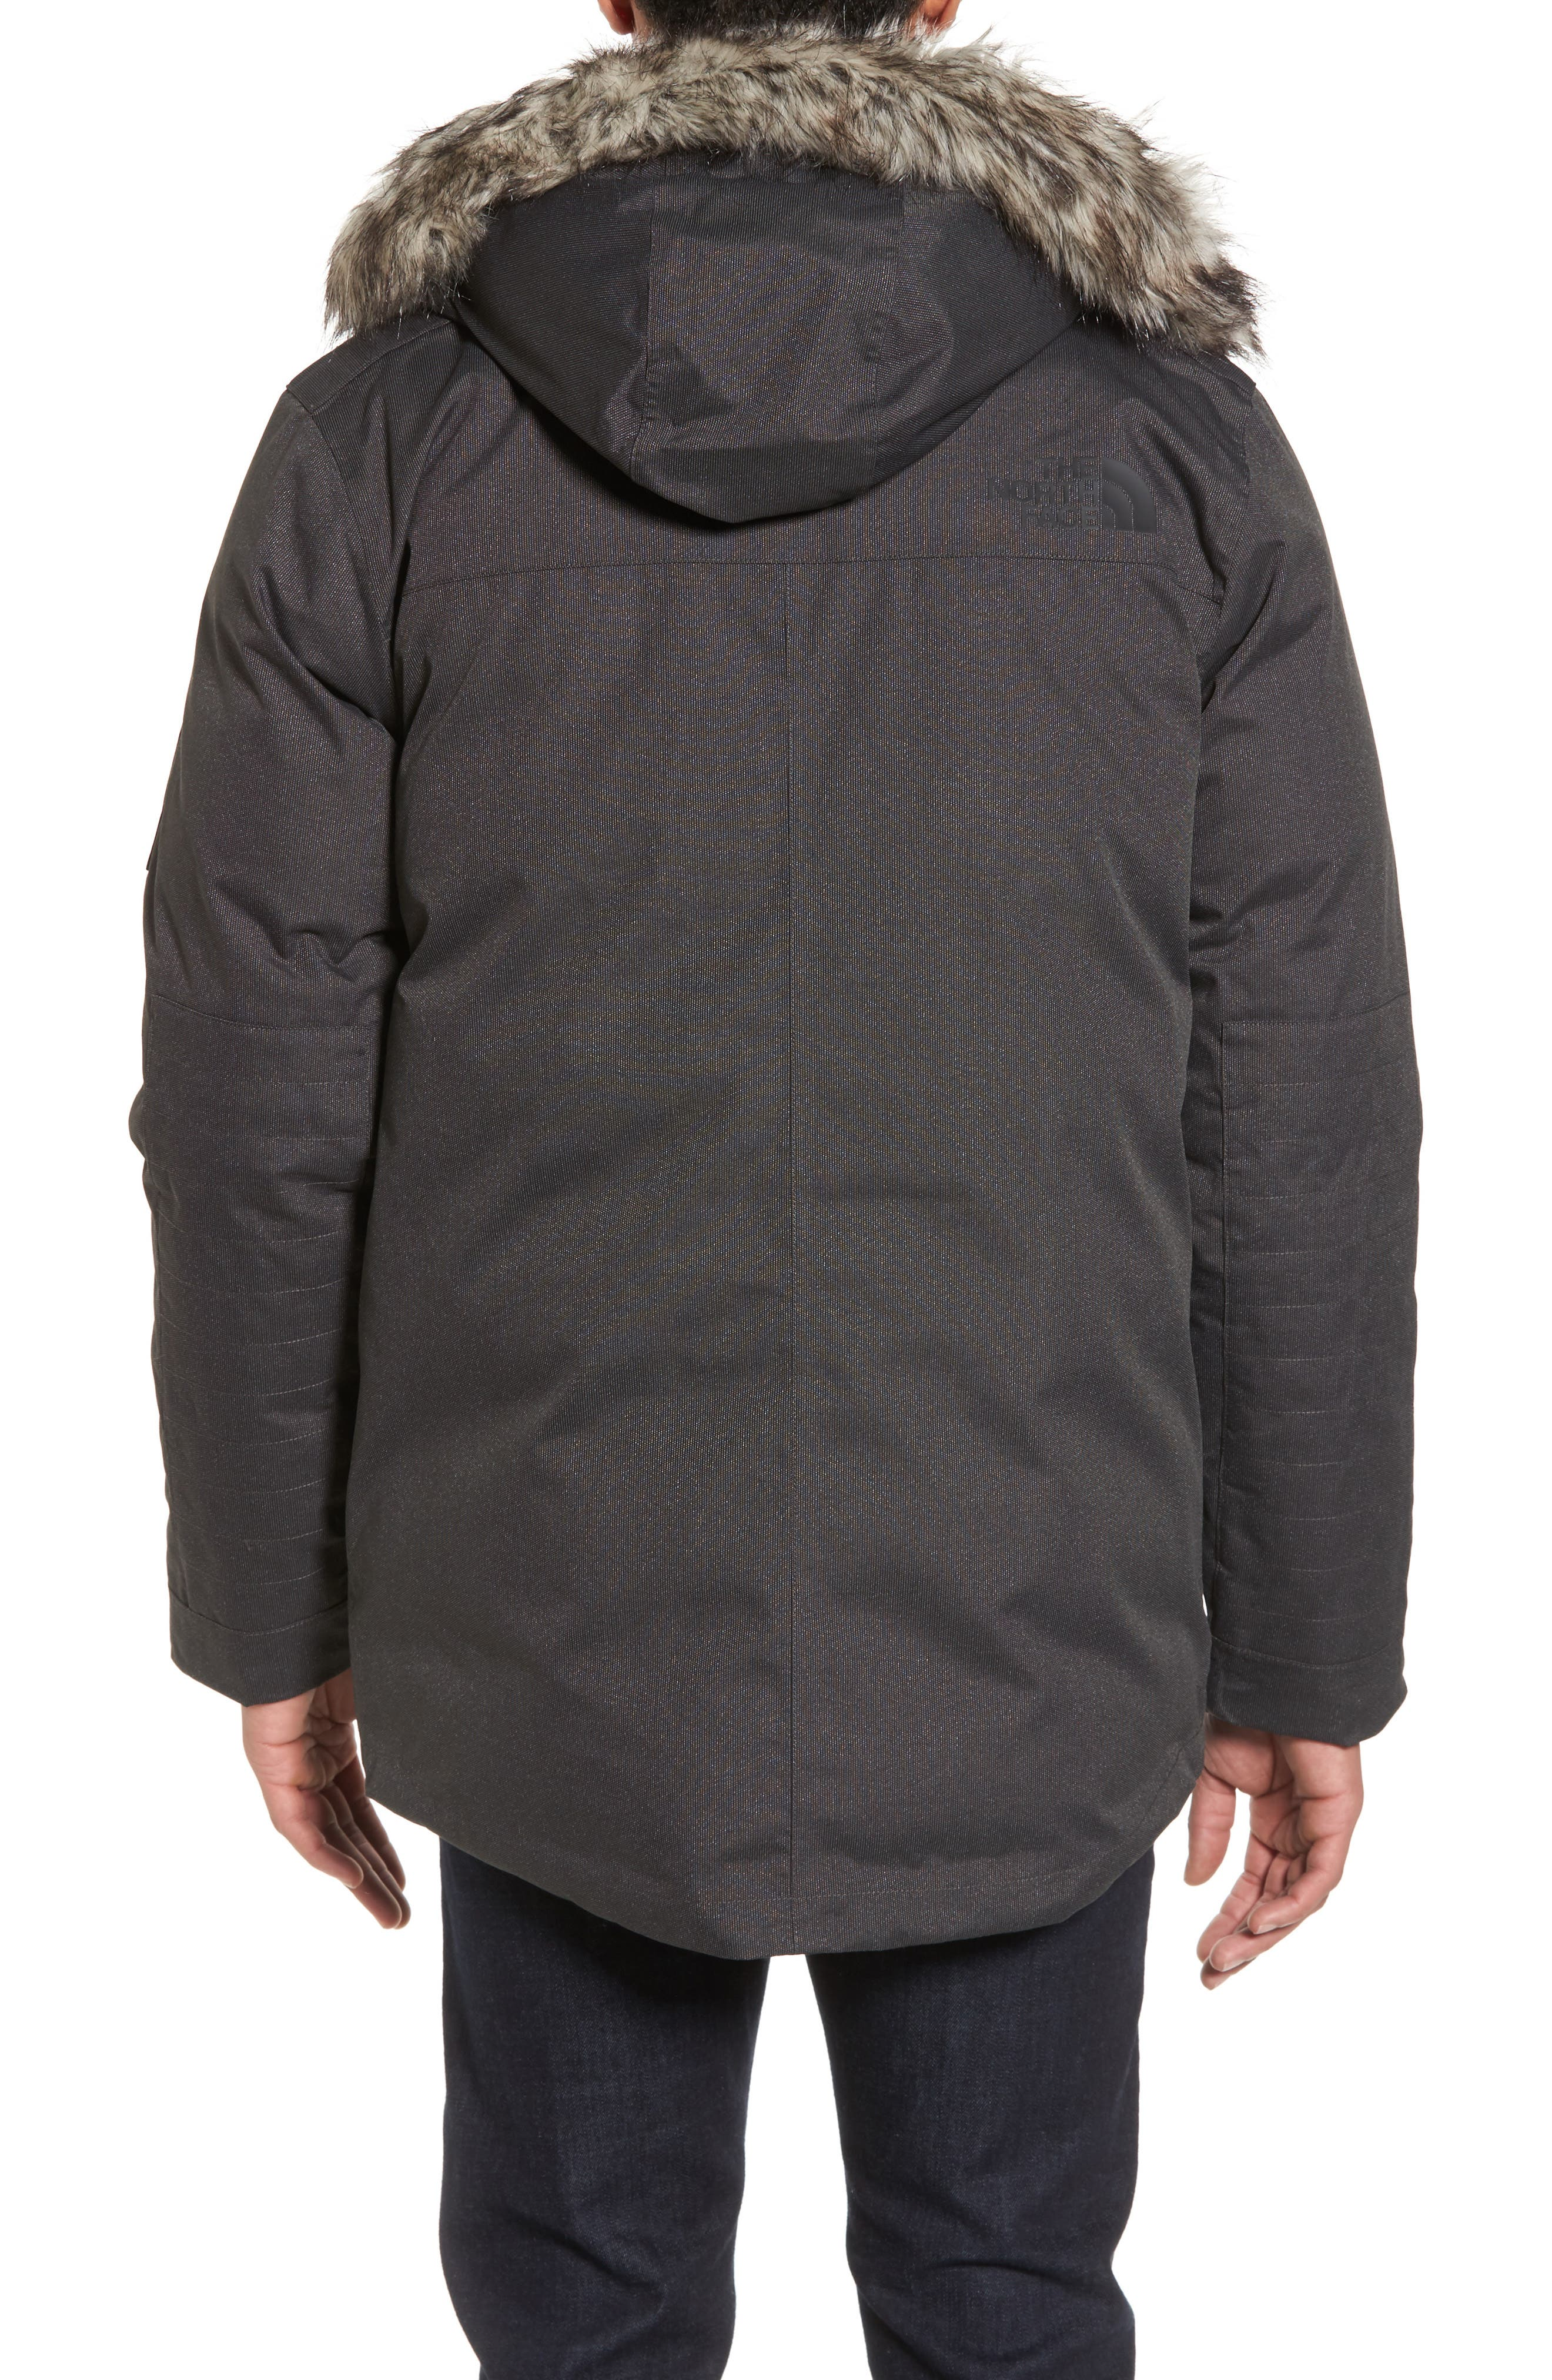 Outer Boroughs Waterproof Parka,                             Alternate thumbnail 2, color,                             Tnf Dark Grey Heather